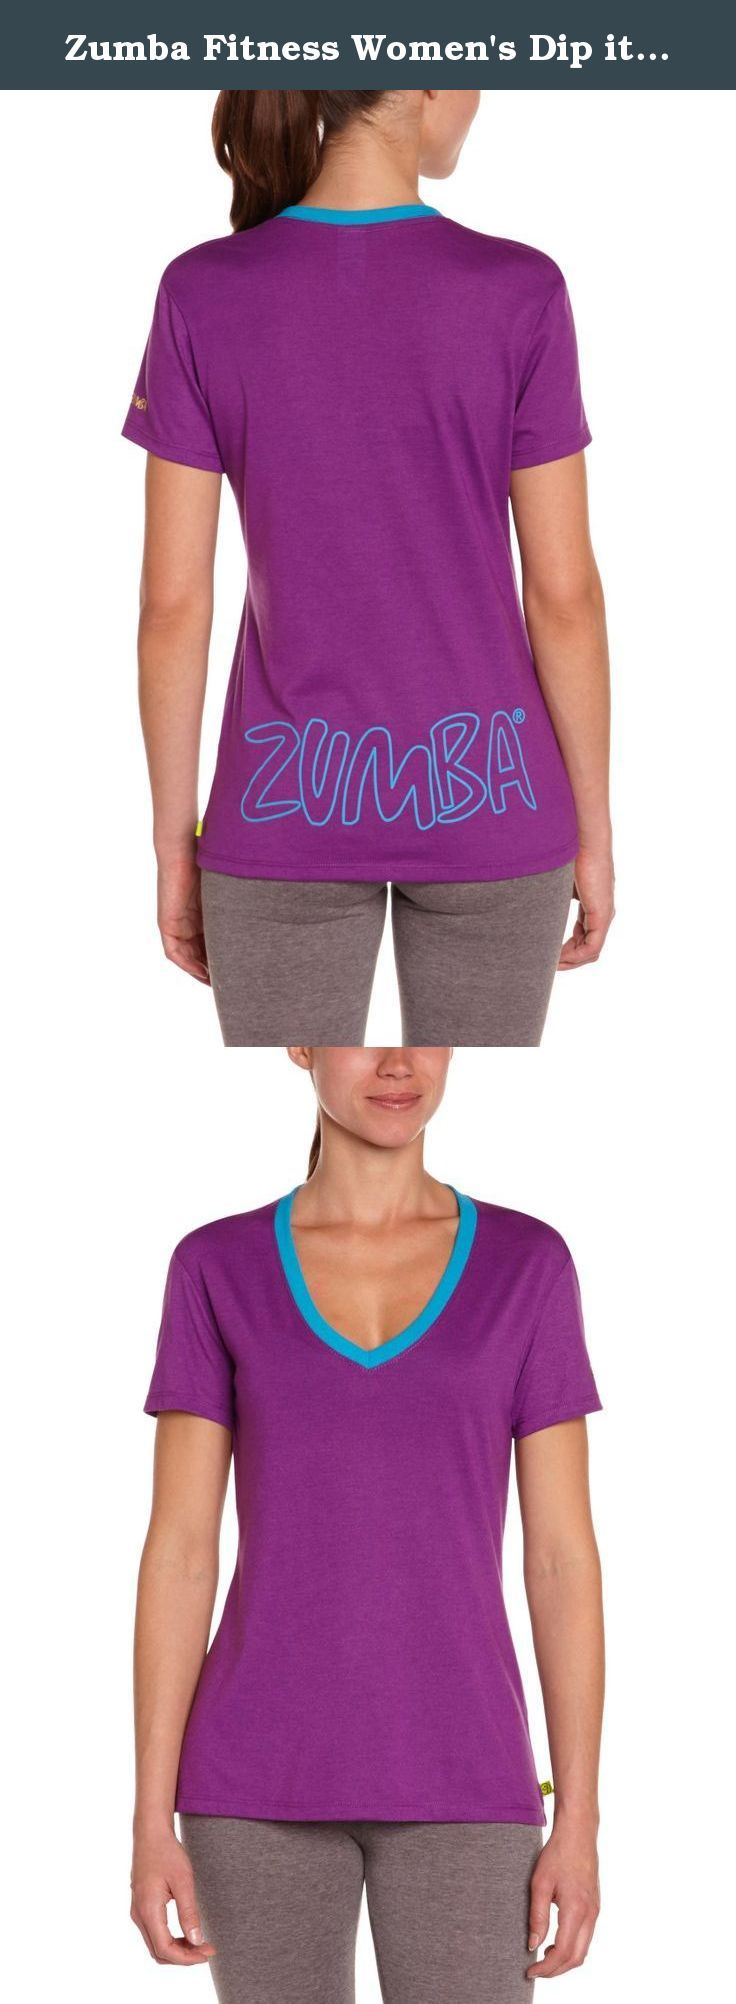 Zumba Fitness Women's Dip it Low V-Neck Tee, Cut N Paste Purple, Large. You work hard to look that good, girl. Show off whatcha workin' with in the ultimate tee for layering, pairing and daring to be noticed. The Dip-It-Low V-Neck is the answer to every wardrobe question. Sporty or cute? Both. Athletic or feminine. Both. Like the perfect pair of jeans, this tee will pull your whole look together. Go ahead, style star, show 'em how it's done.